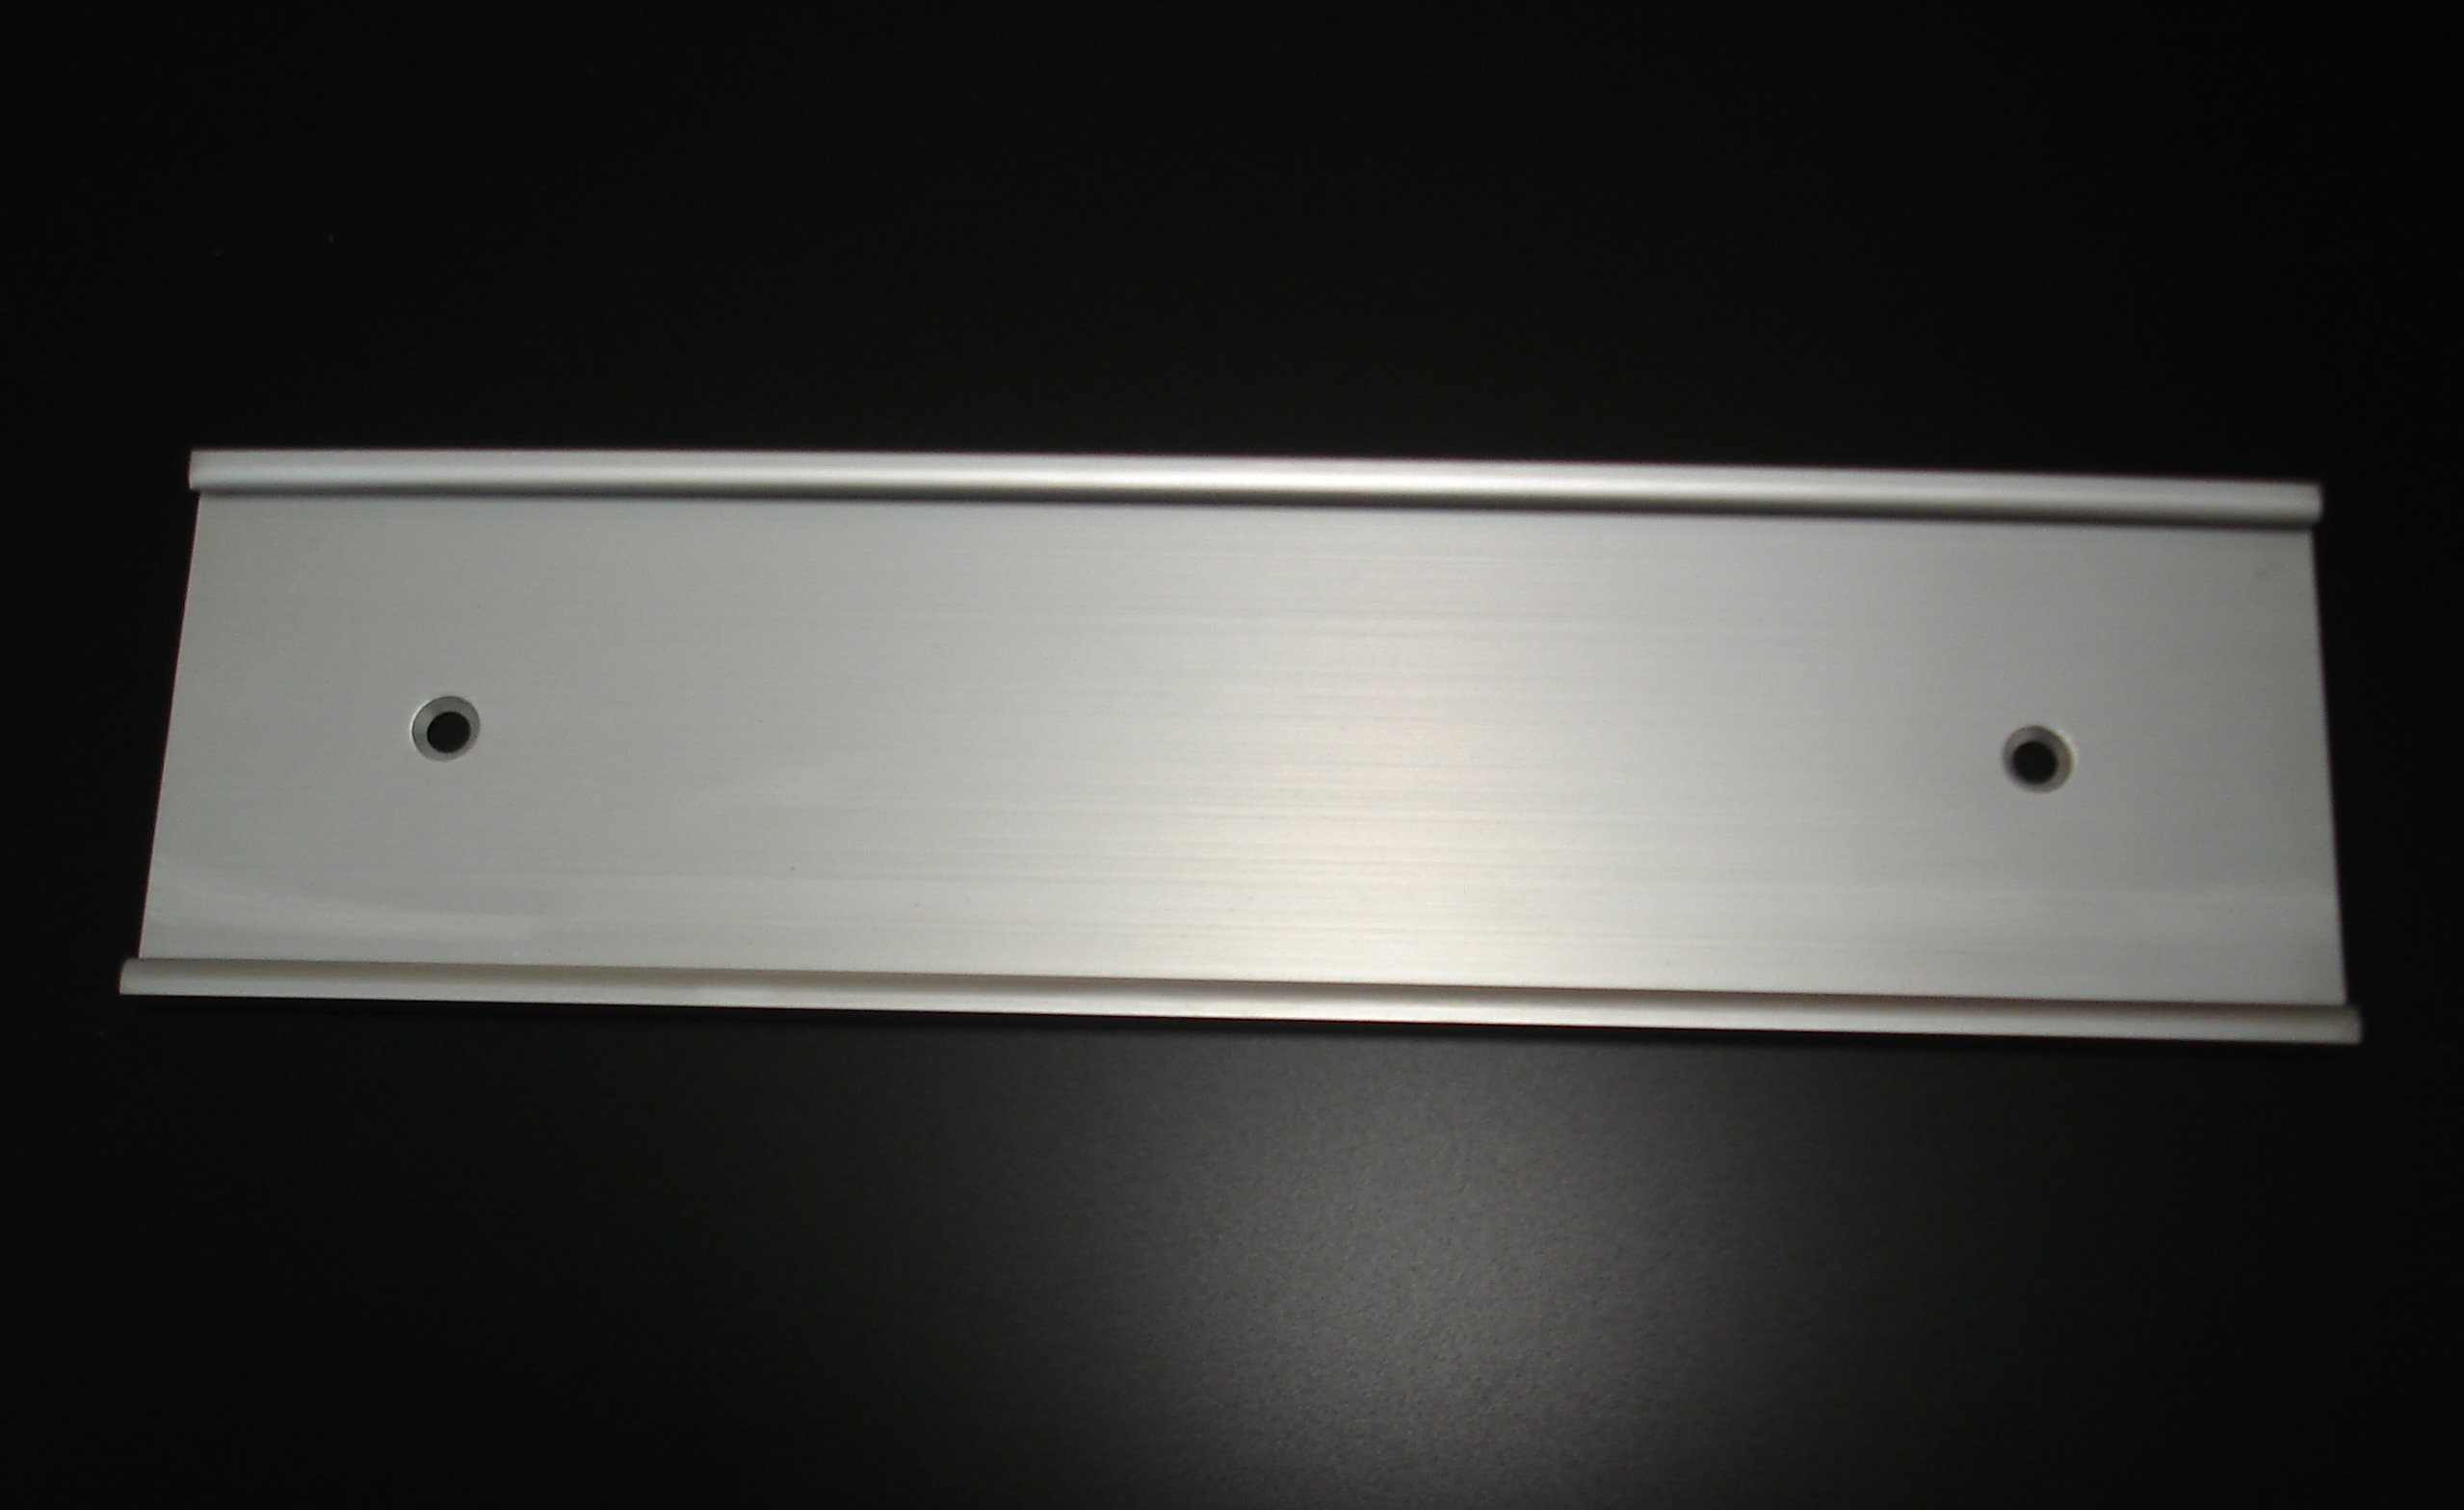 Wall Mount Name Plate Holders Matte Silver (Not Shiny)- Pack of 10 (2'' x 10'')